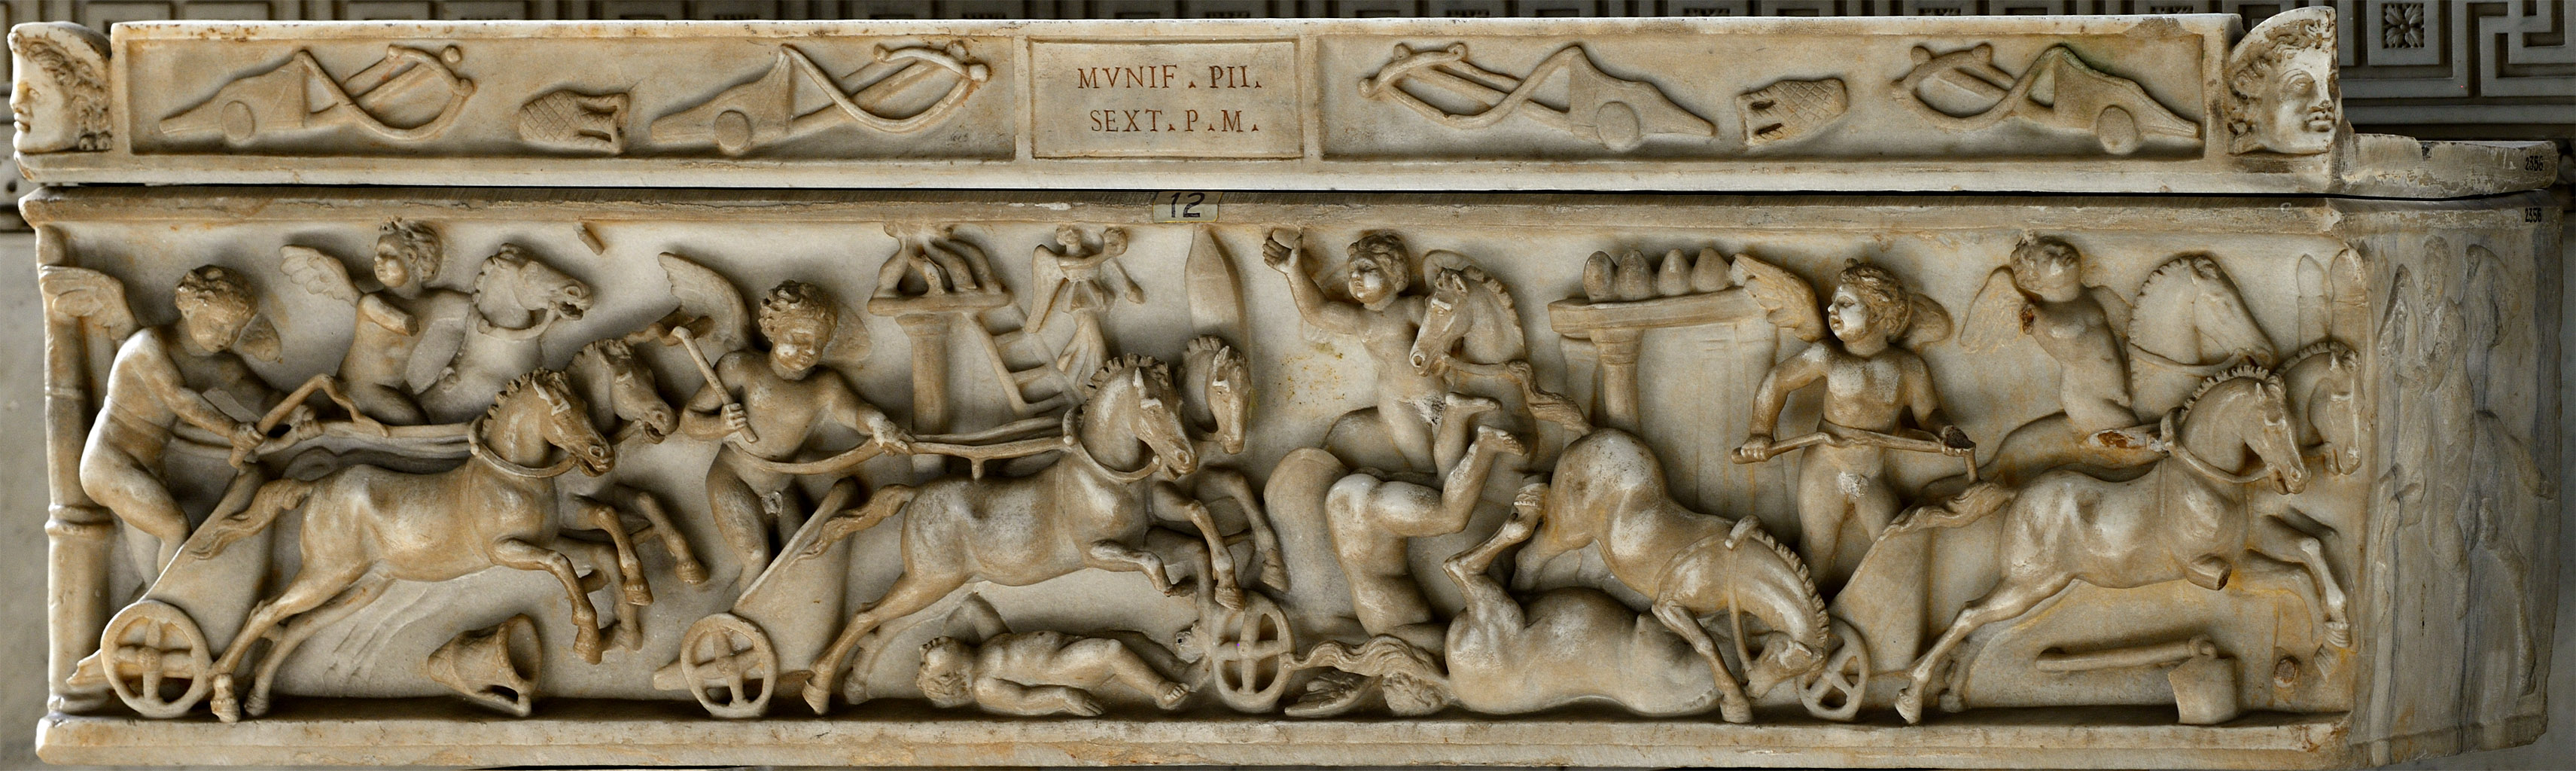 Sarcophagus of a child with a chariot race of Amors (front panel). Marble. 130—192 CE. Inv. No. 2356. Rome, Vatican Museums, Pius-Clementine Museum, Room of the Biga, 12